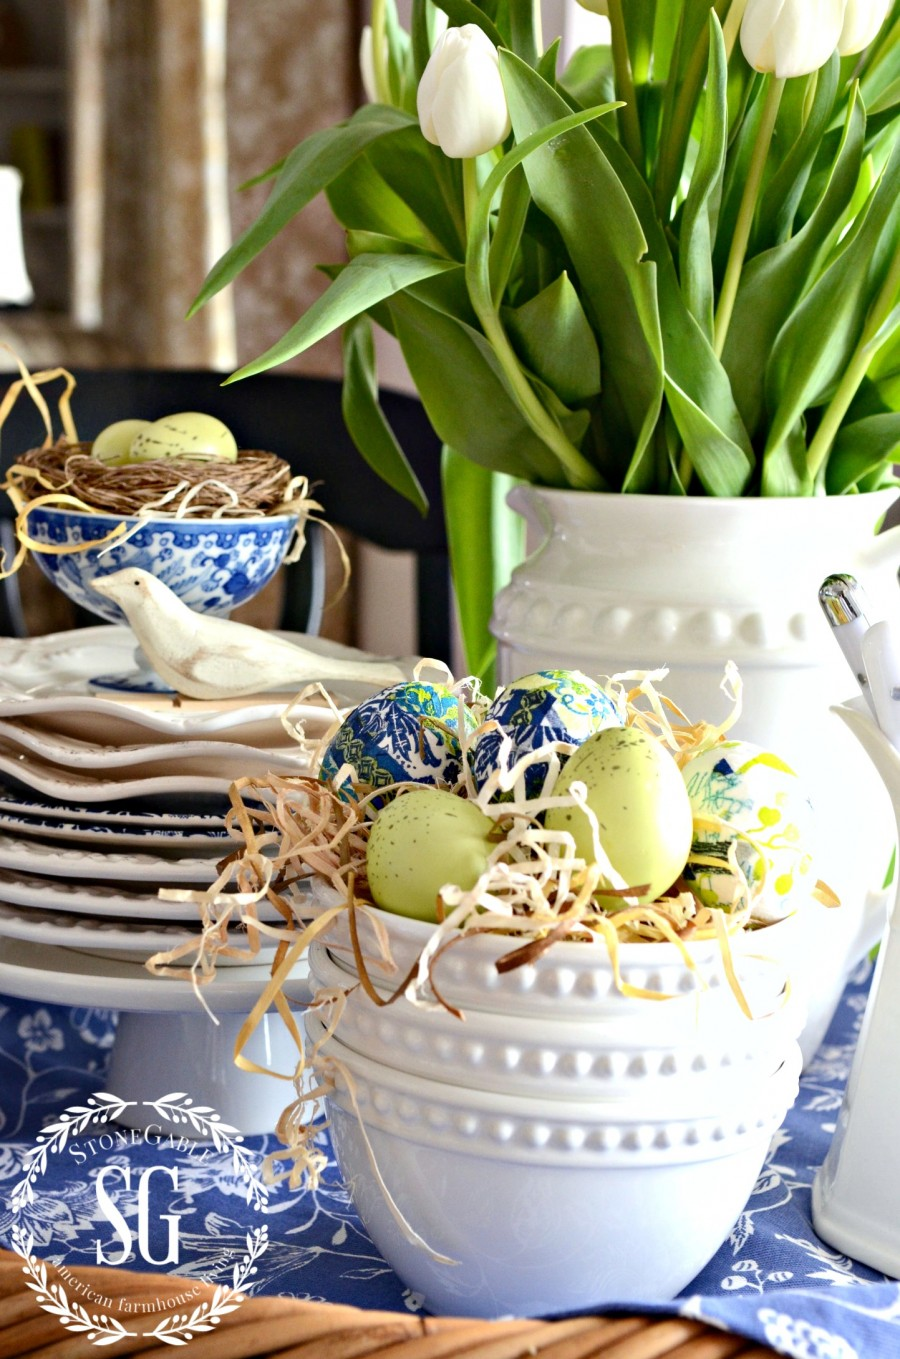 SPRING KITCHEN TABLE VIGNETTE-blue tea towel-colorful eggs-stonegableblog.com